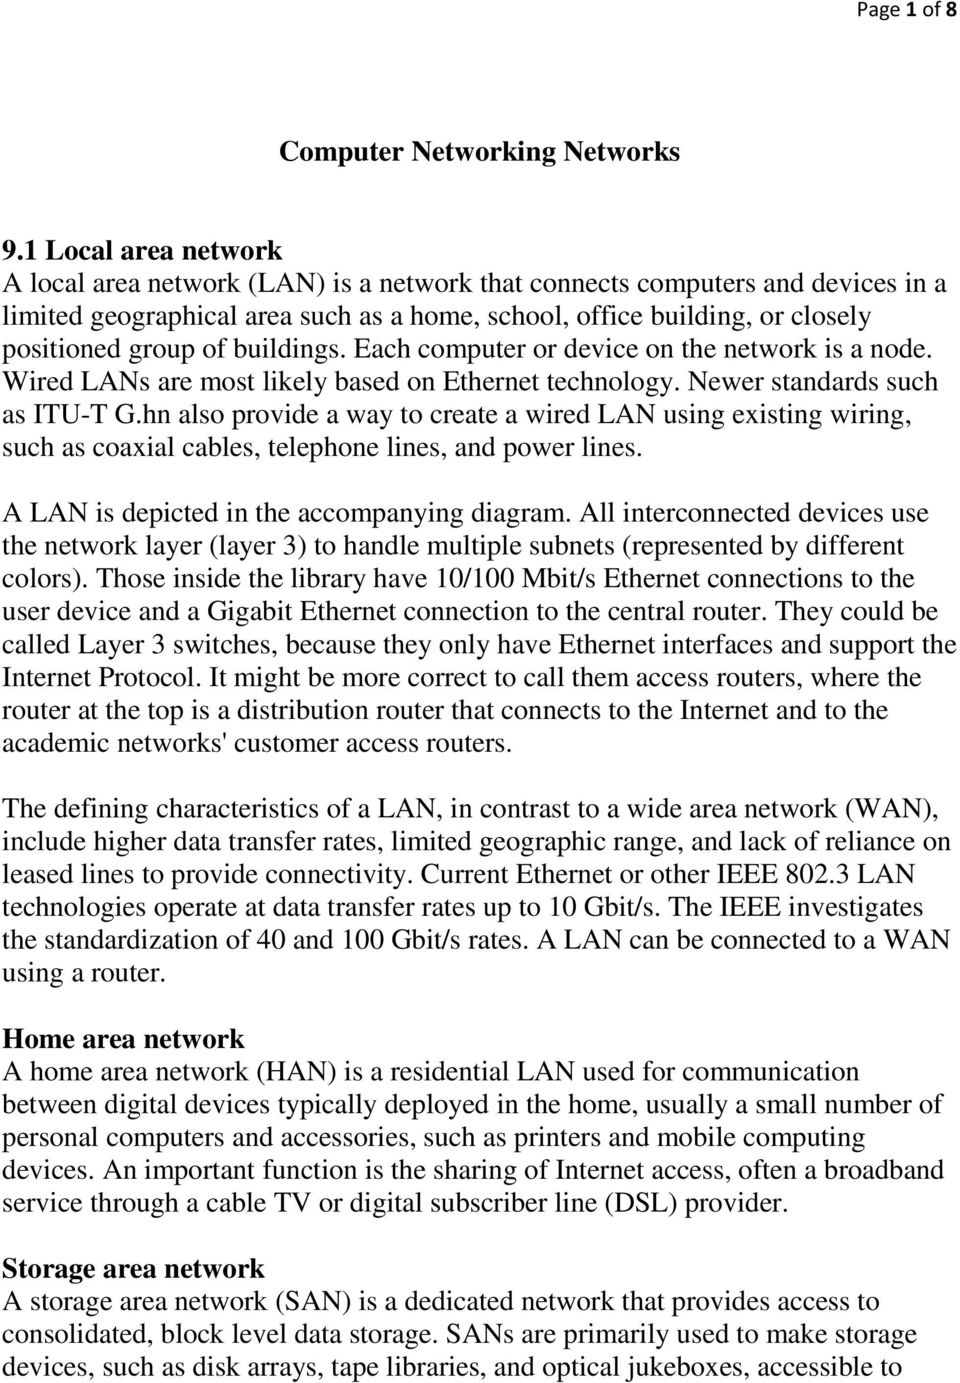 buildings. Each computer or device on the network is a node. Wired LANs are most likely based on Ethernet technology. Newer standards such as ITU-T G.